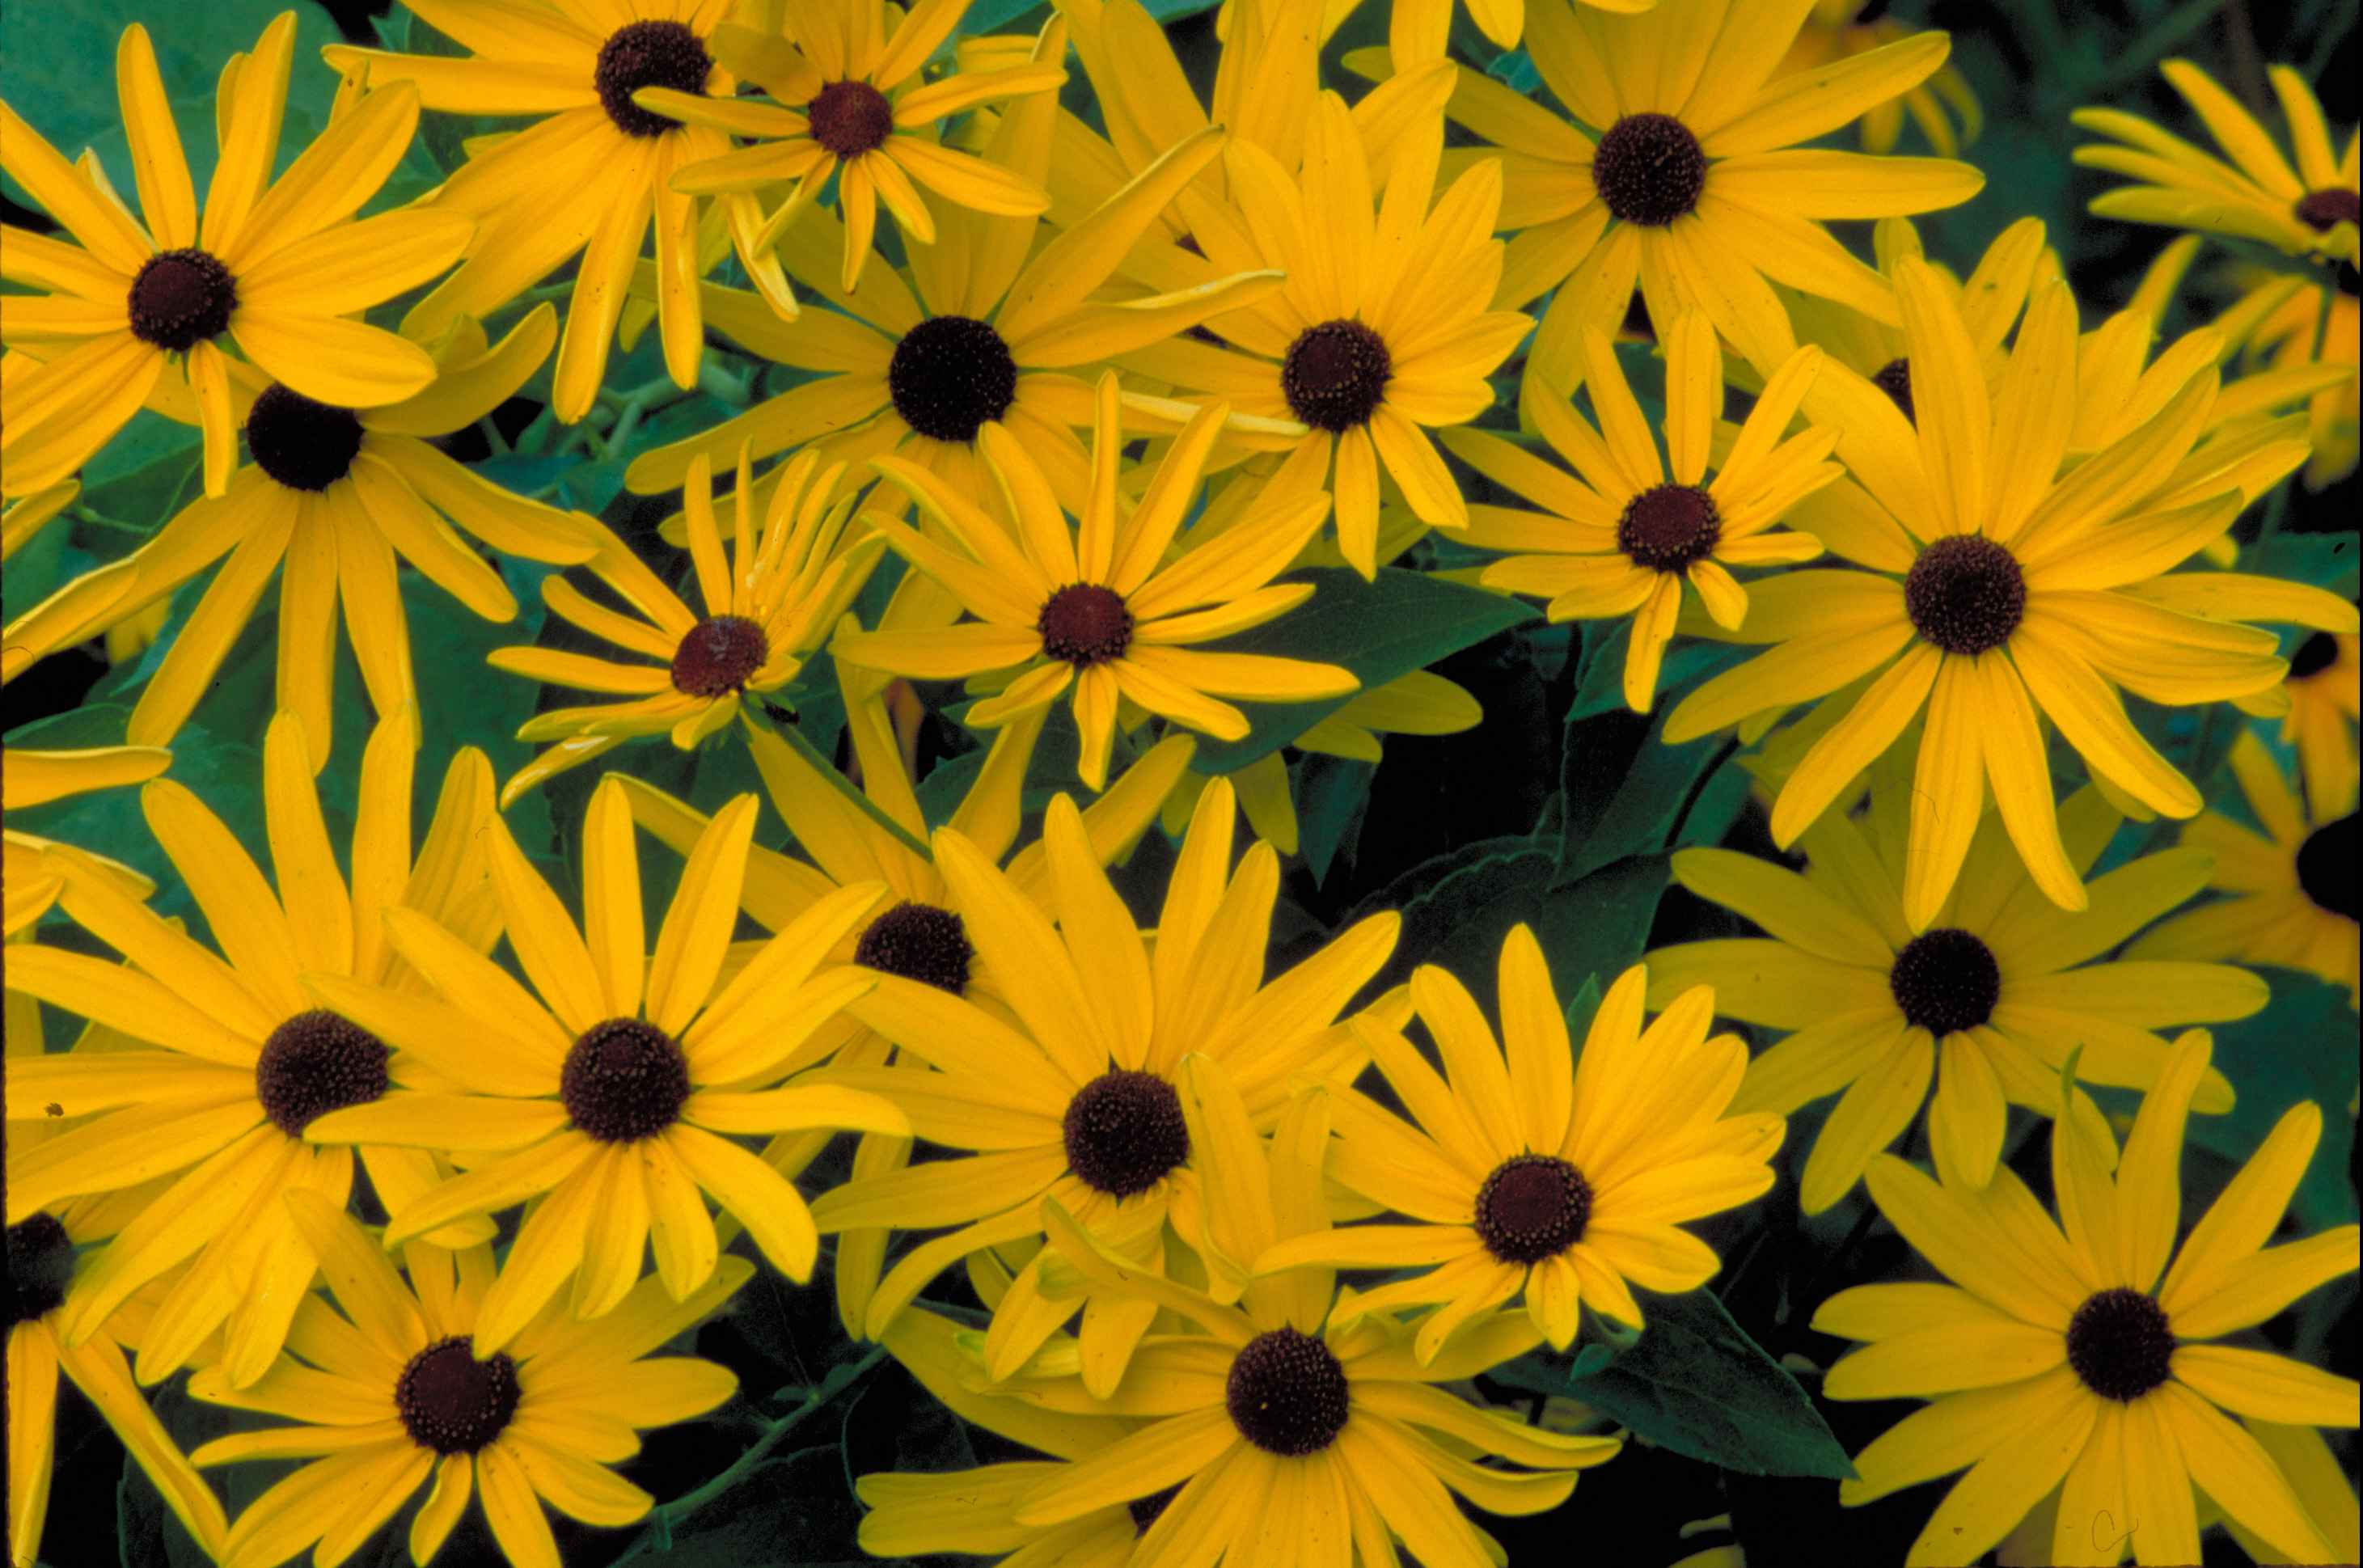 Free picture sweet black eyed susan bright yellow blossoms sweet black eyed susan bright yellow blossoms dark brown ceters flowers rudbeckia subtomentosa mightylinksfo